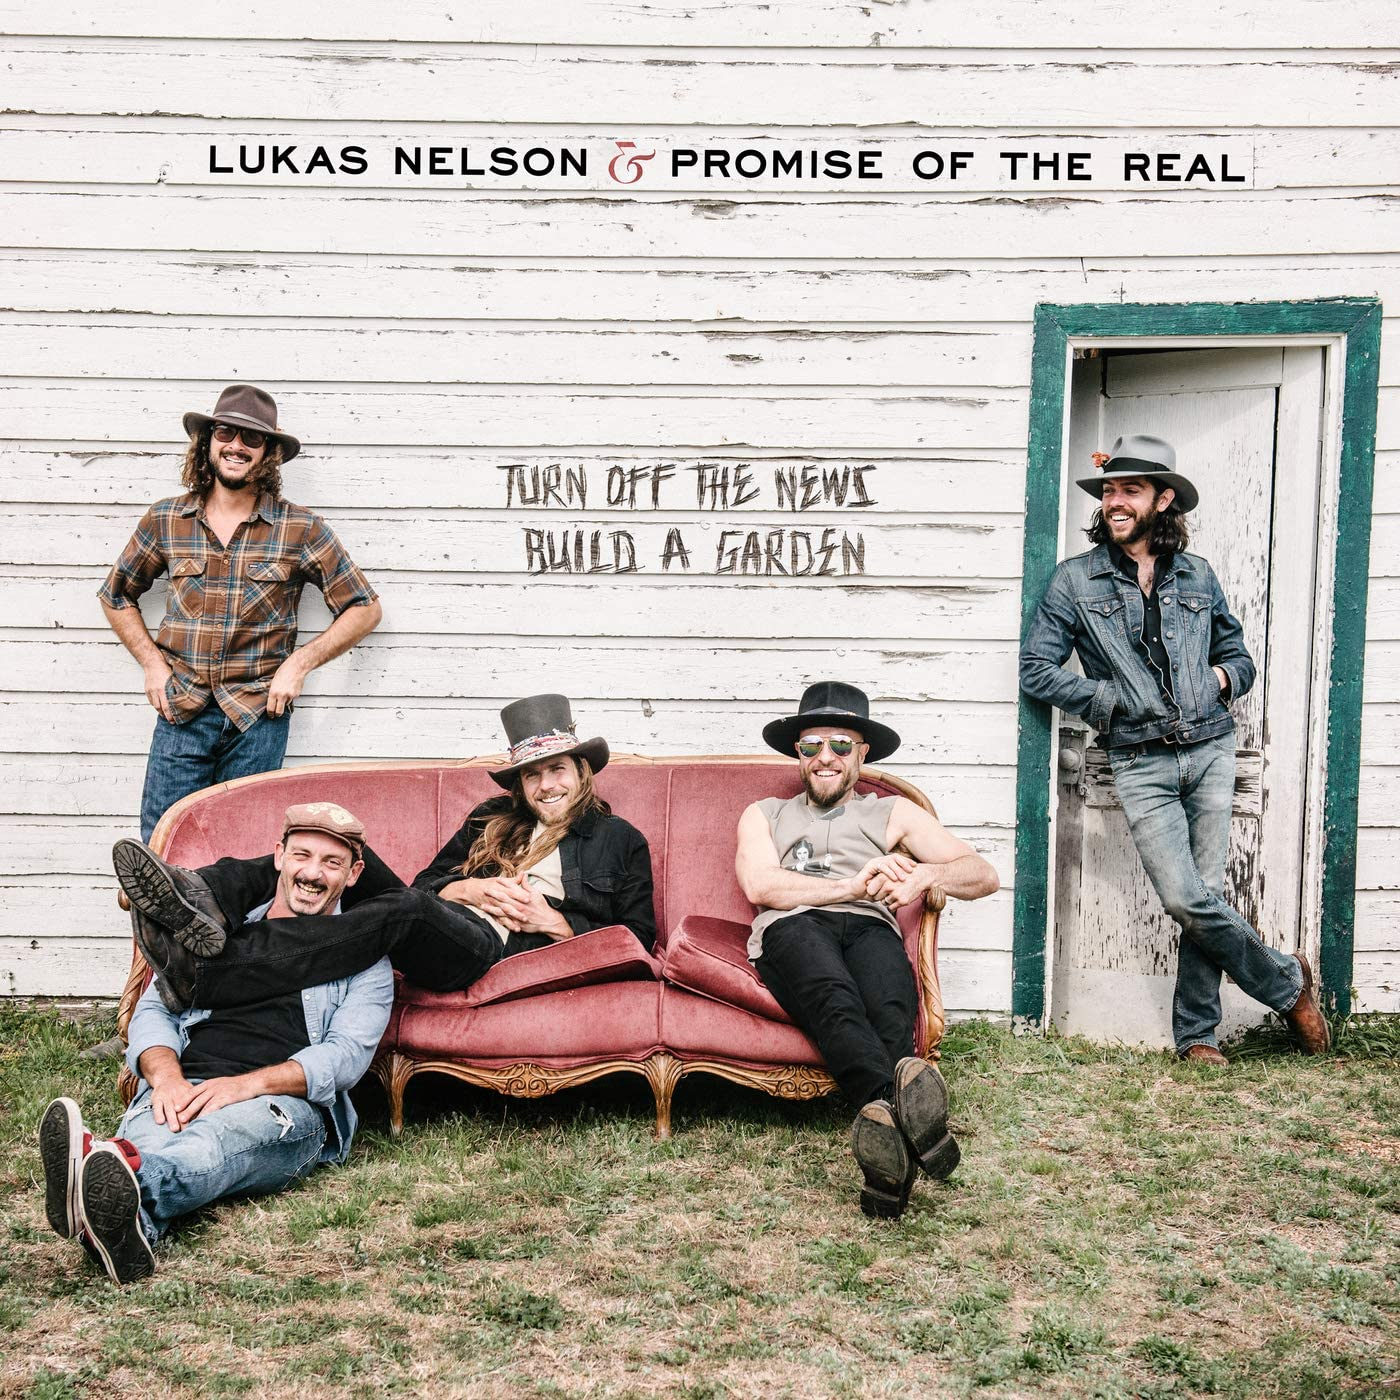 Nelson, Lukas And Promise of the Real/Turn Off the News [LP]